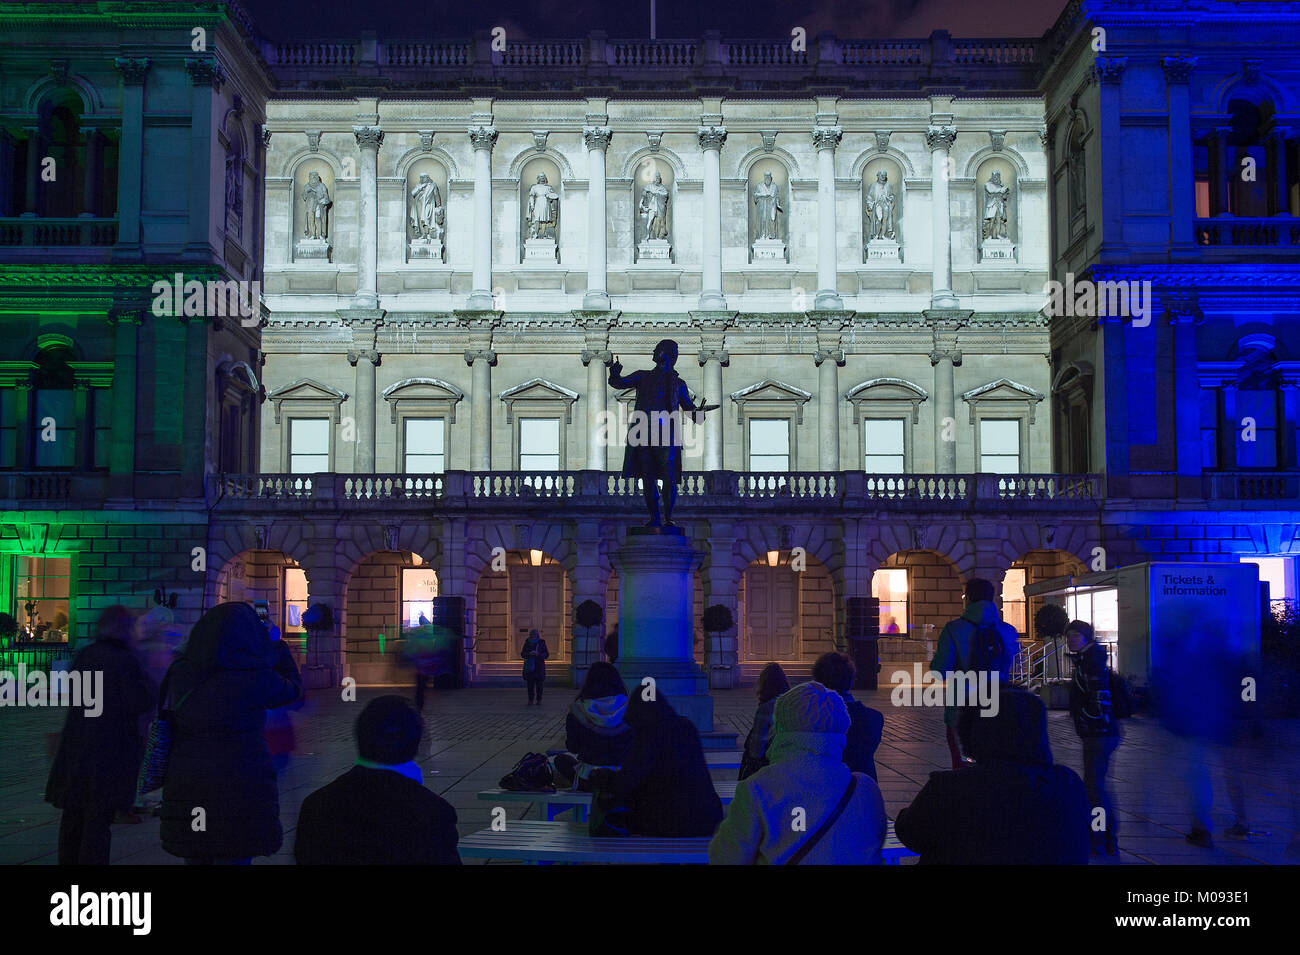 18 Jan 2018. Lumiere London. 'Love Motion' animation by Rhys Coren projected onto the facade of the RA in - Stock Image